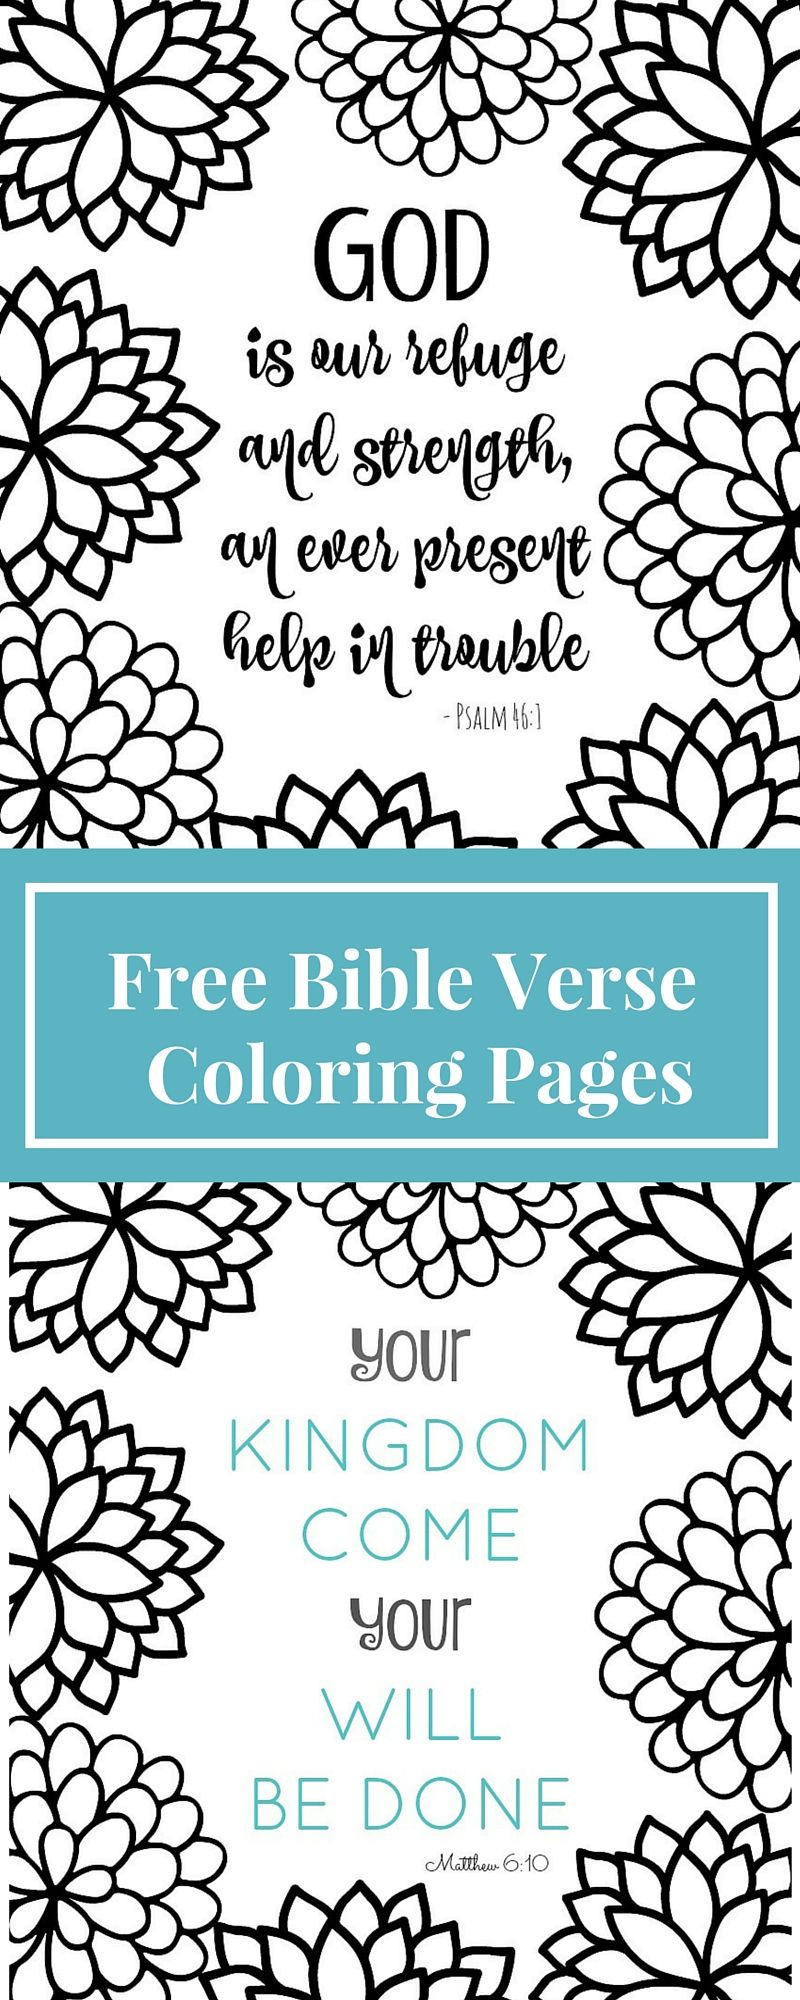 Free coloring pages for young adults - Free Printable Bible Verse Coloring Pages With Bursting Blossoms